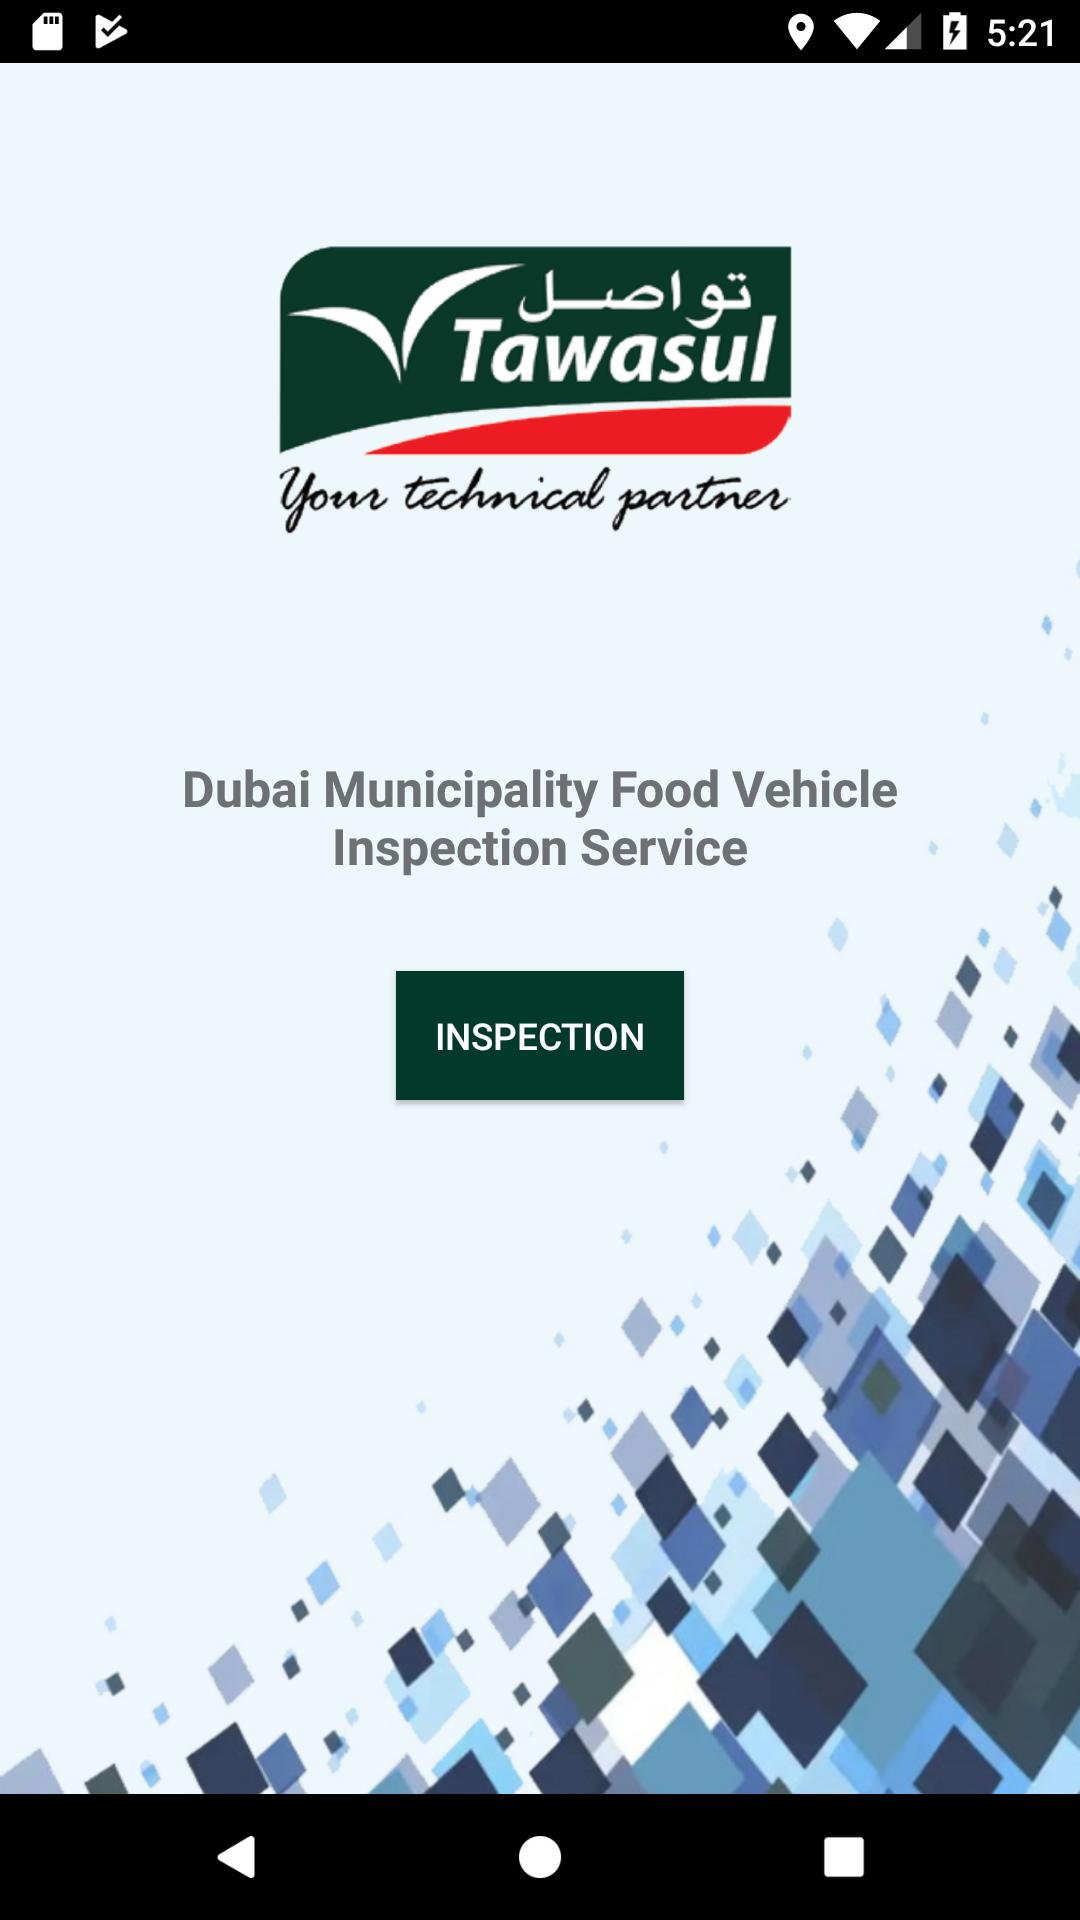 Dubai Municipality Food Vehicle Inspection for Android - APK